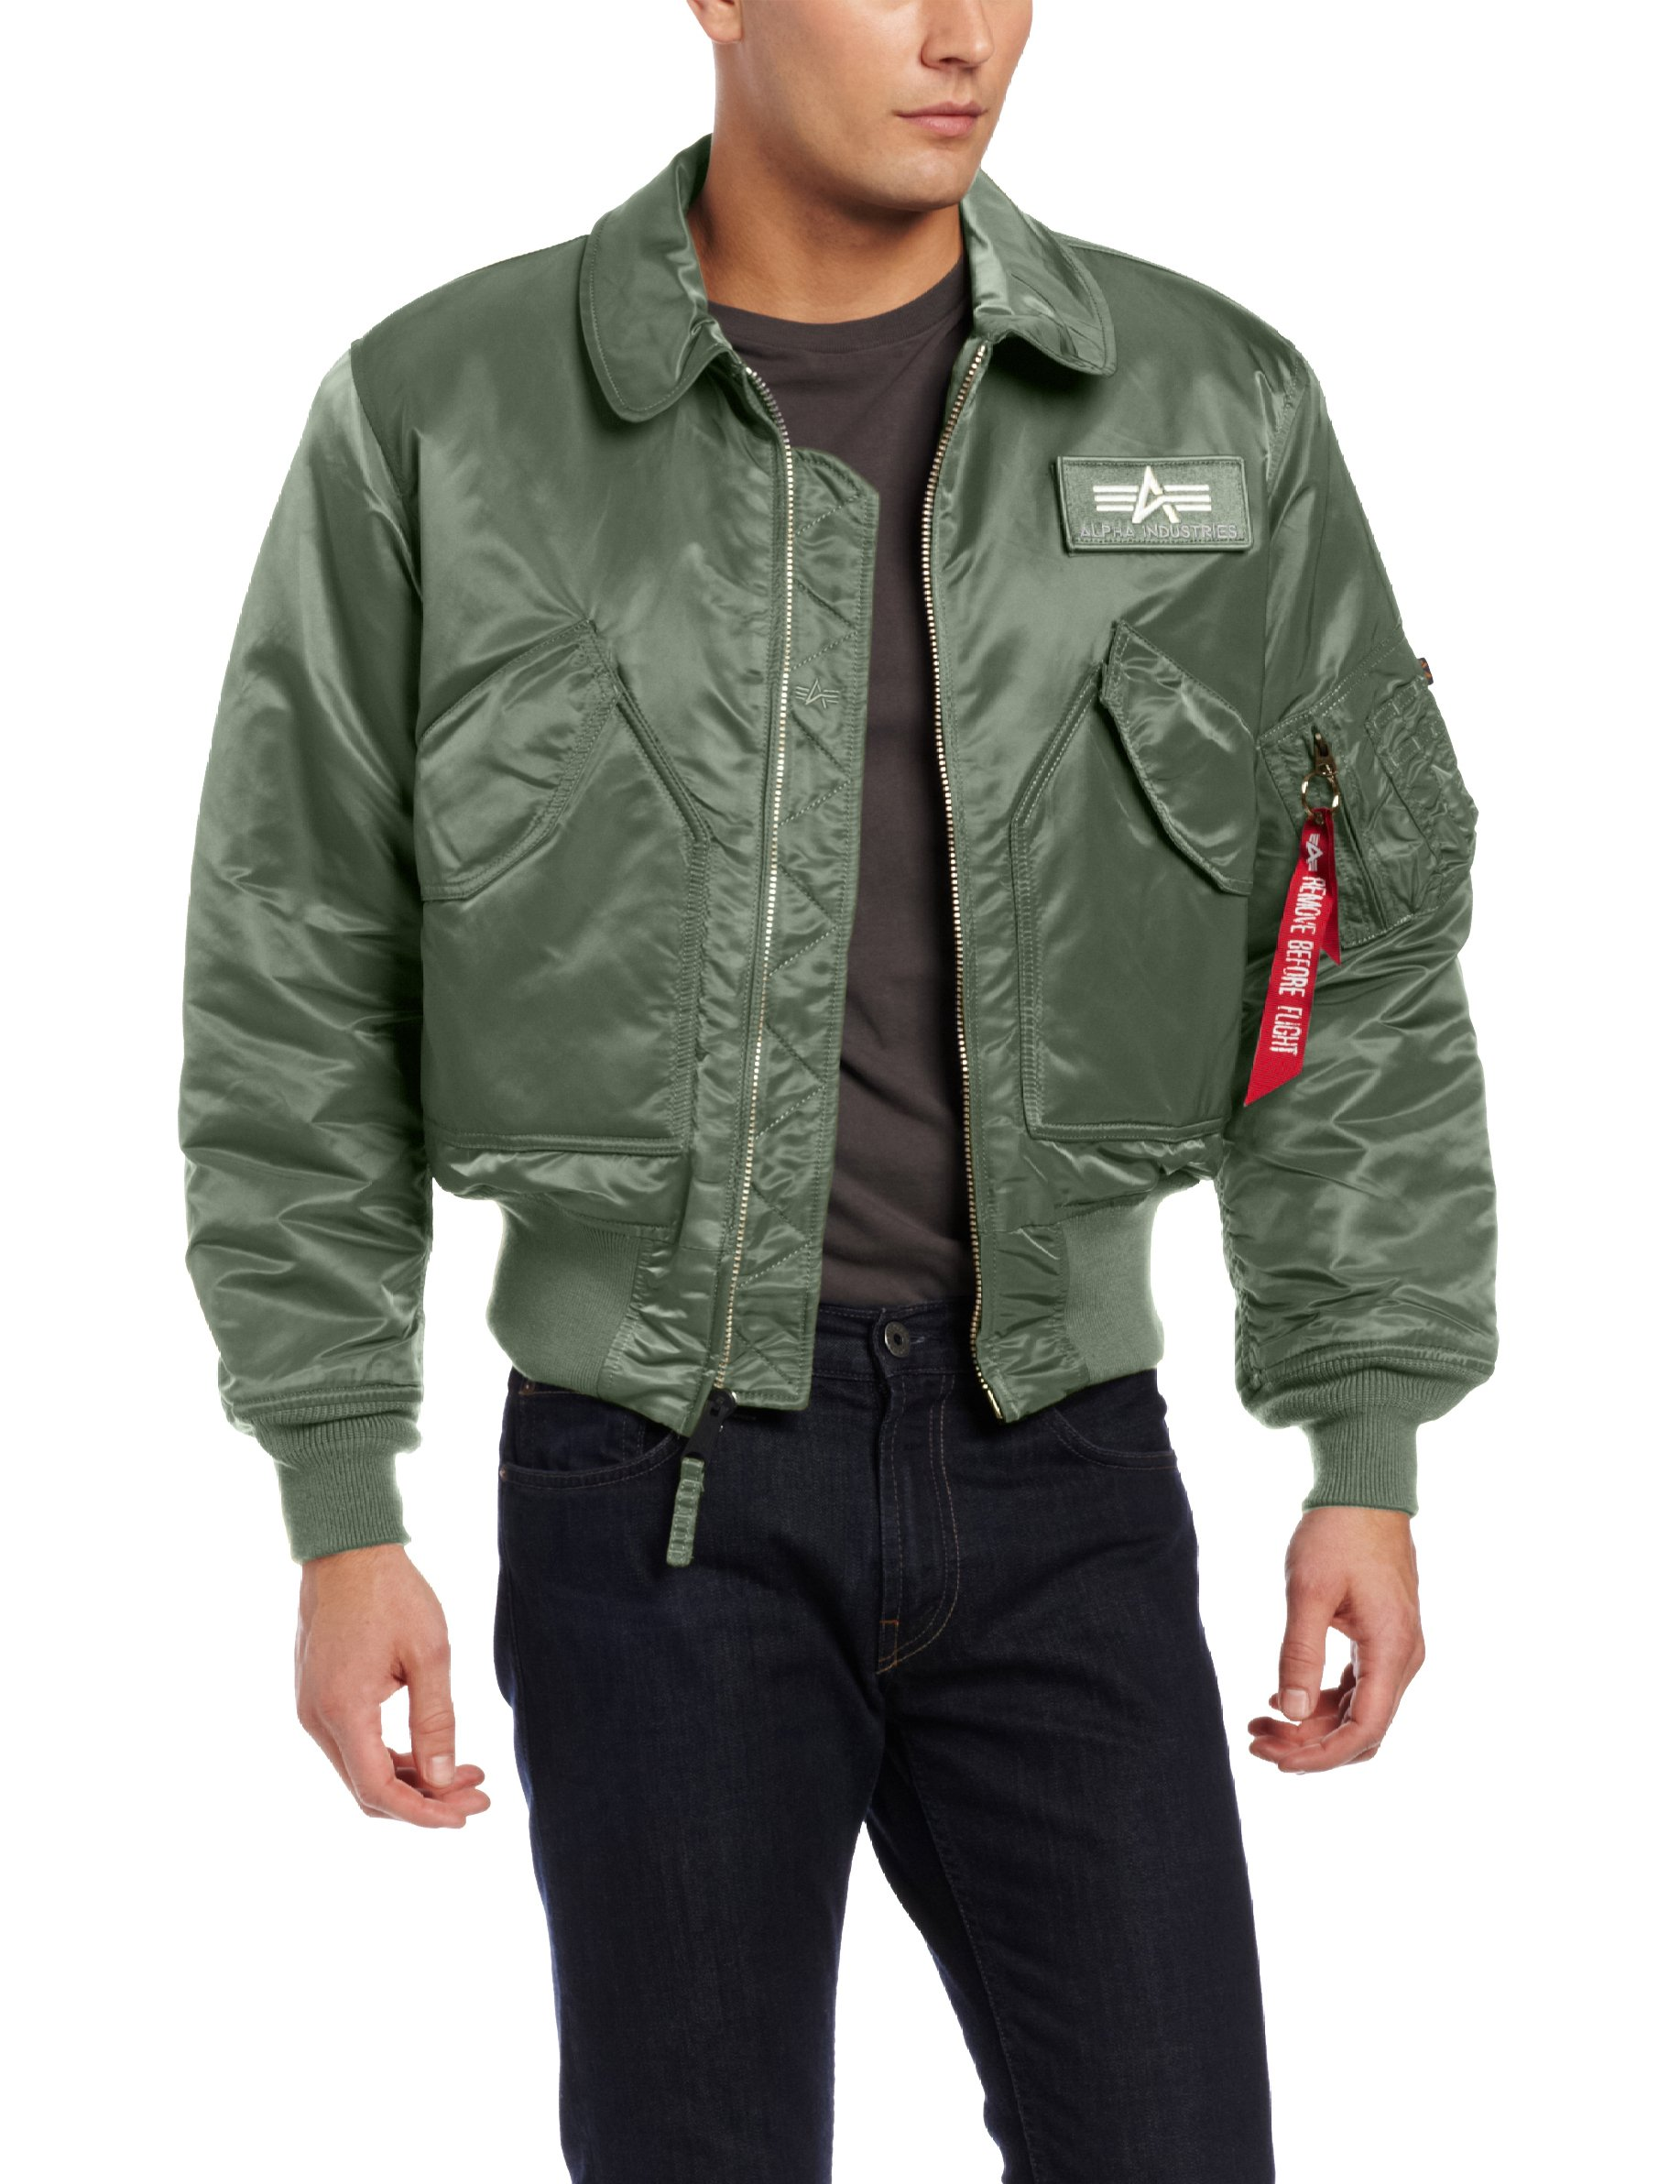 Alpha Industries Men's CWU 45/P Flight Jacket, Sage Green, Small by Alpha Industries